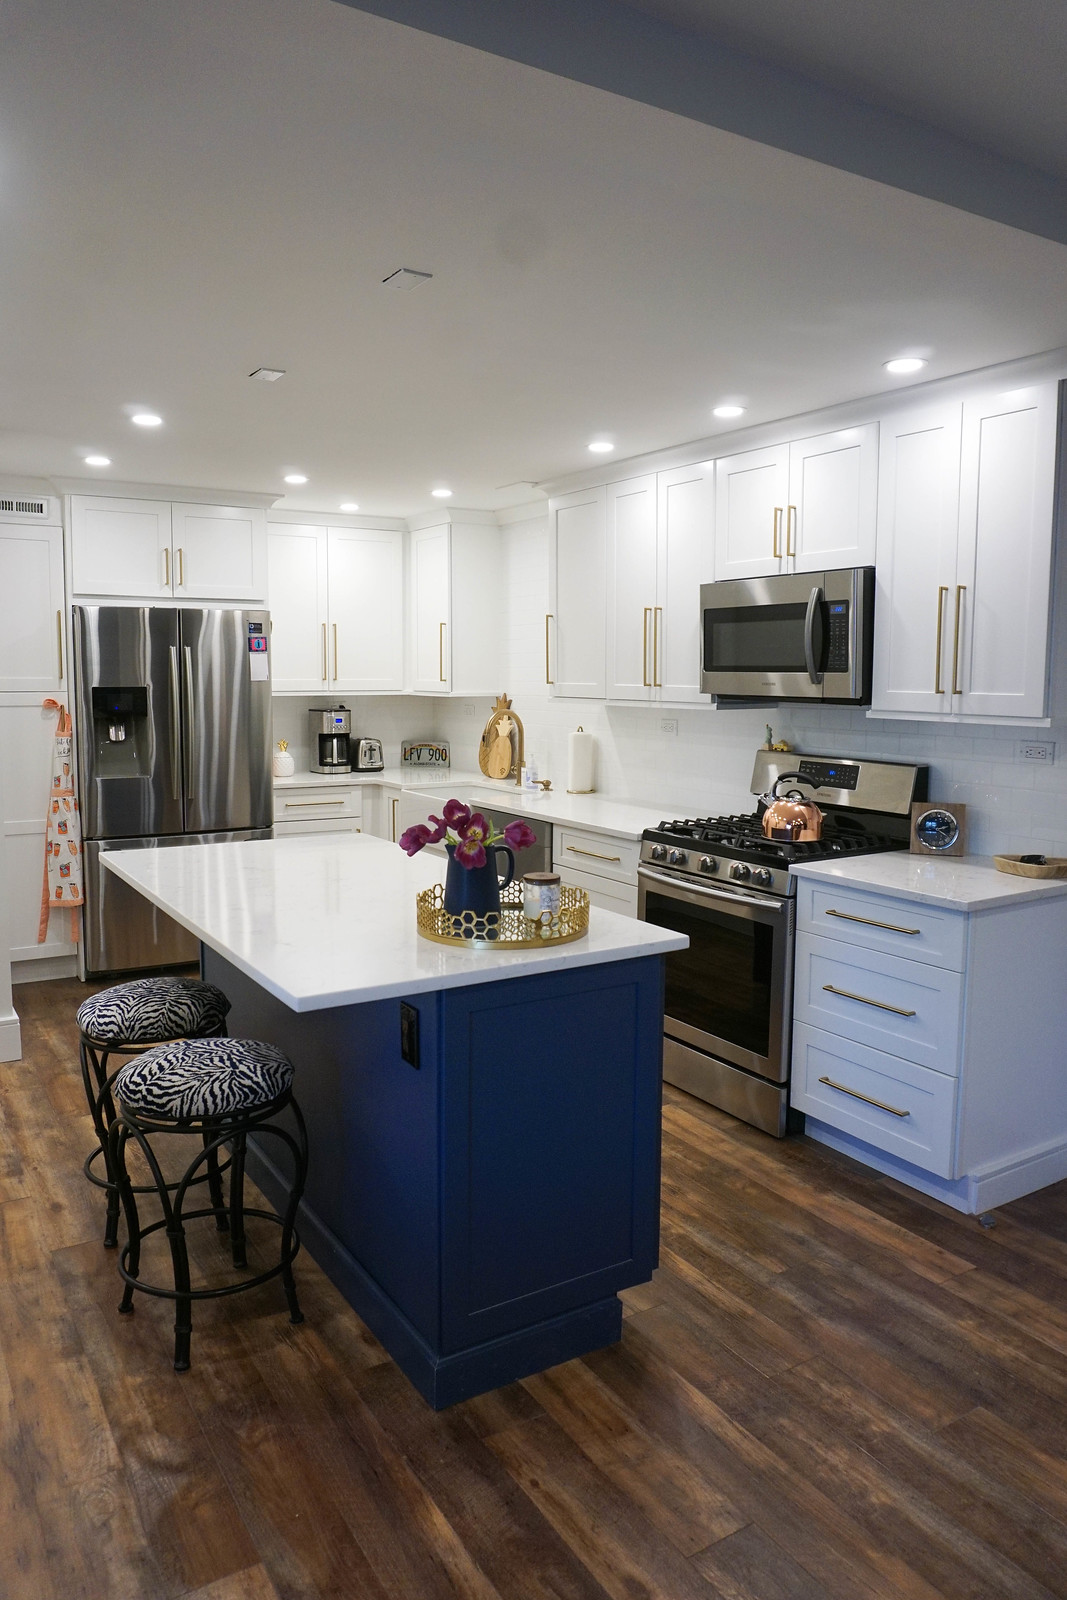 Kitchen Design Ideas Small Apartment | Two Toned Cabinet Install | Before & After: My New York Apartment Kitchen Renovation | 1970s Apartment Small Kitchen Redesign | Living After Midnite Jackie Giardina